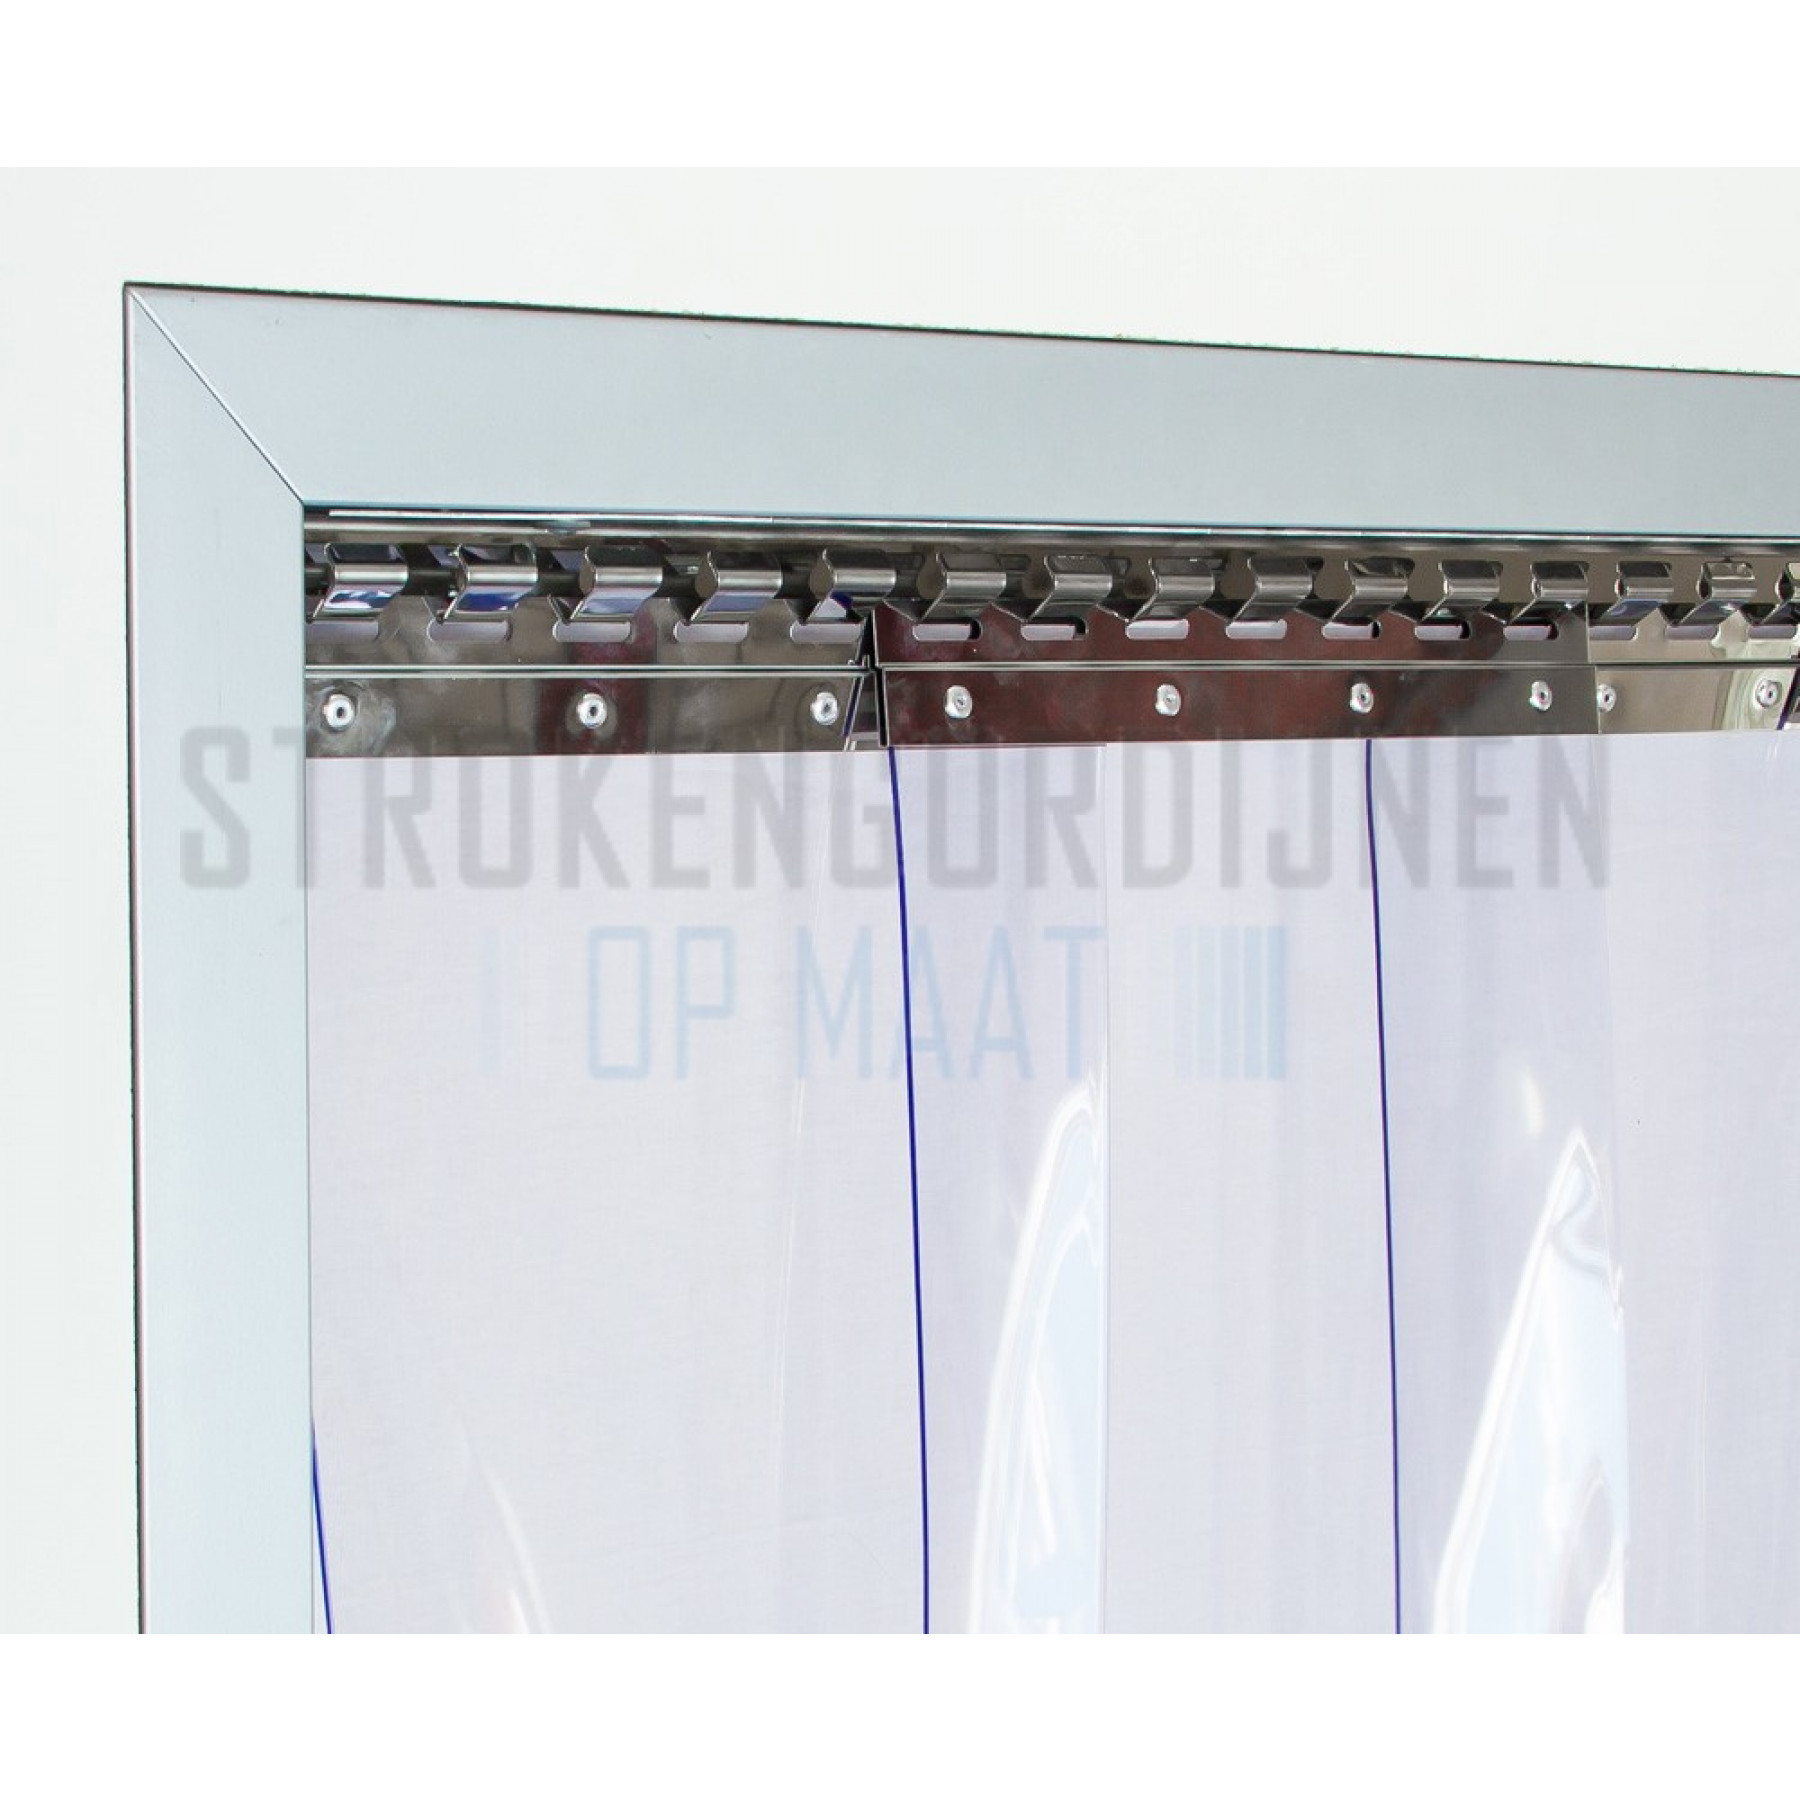 PVC stroken op maat, 300mm breed, 3mm dik, transparant